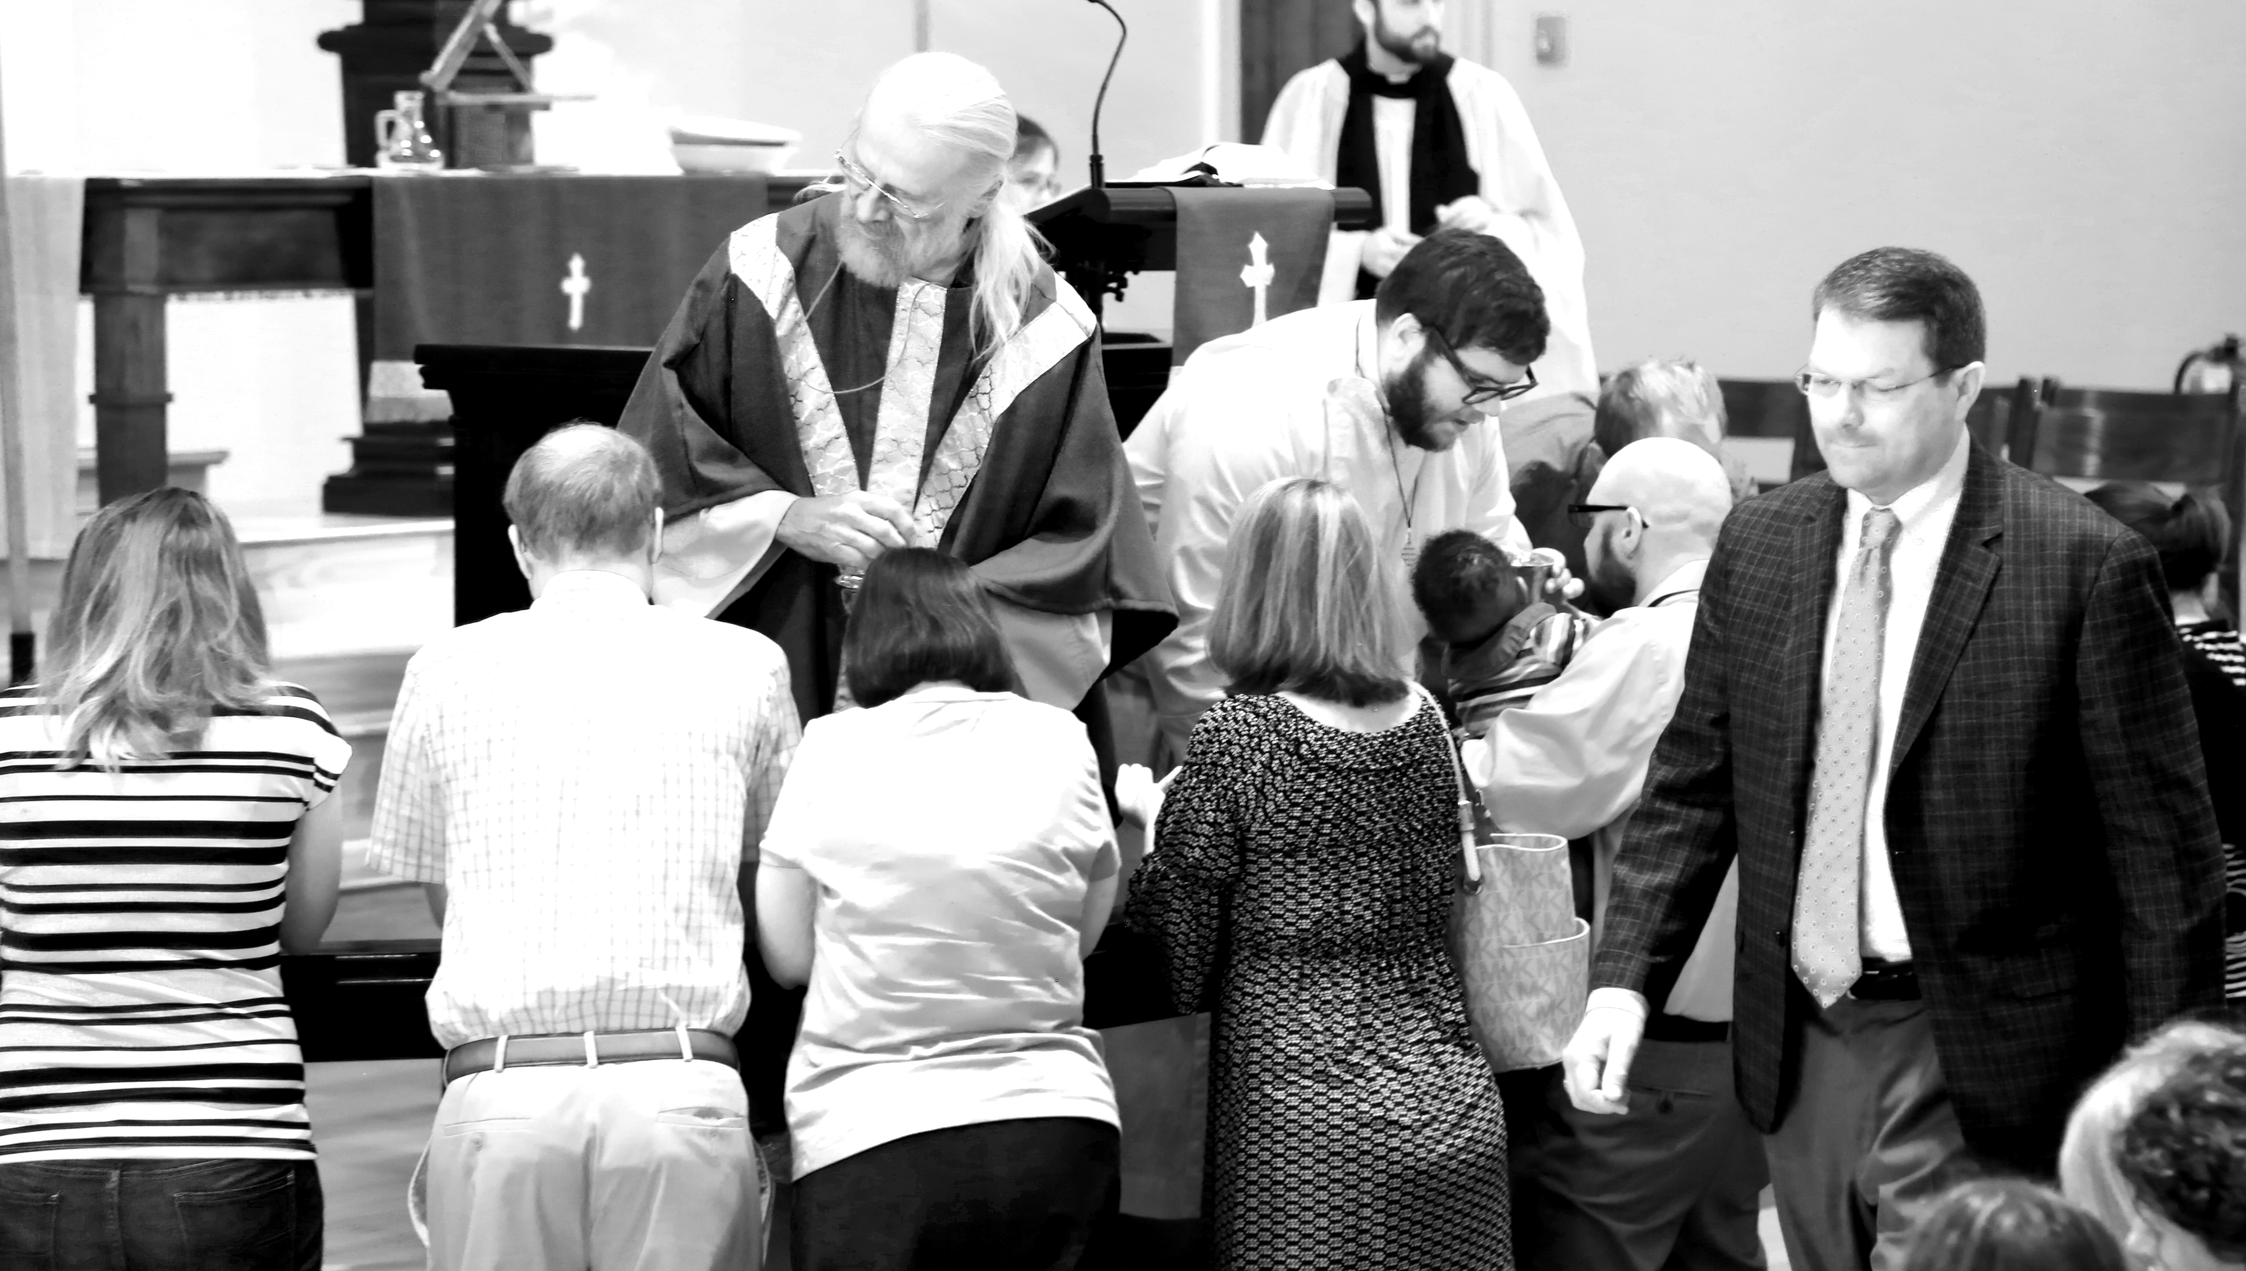 communion bnw.png